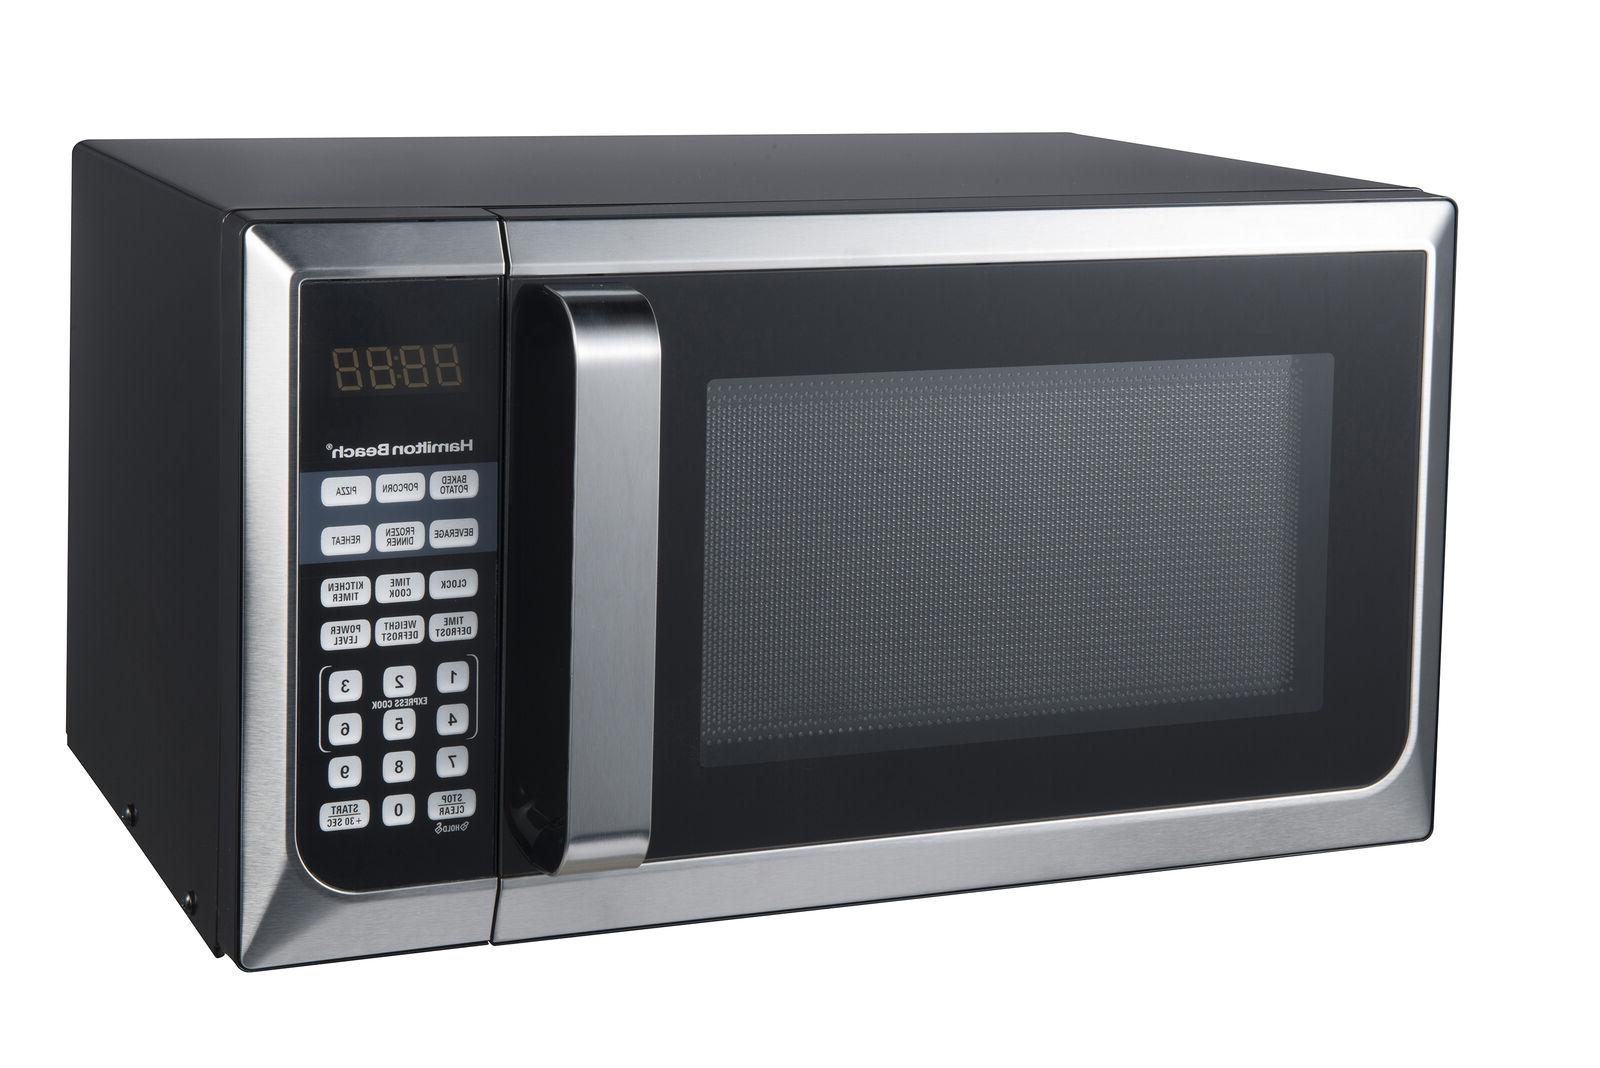 Hamilton 0.9 Ft. Stainless Steel Countertop Microwave